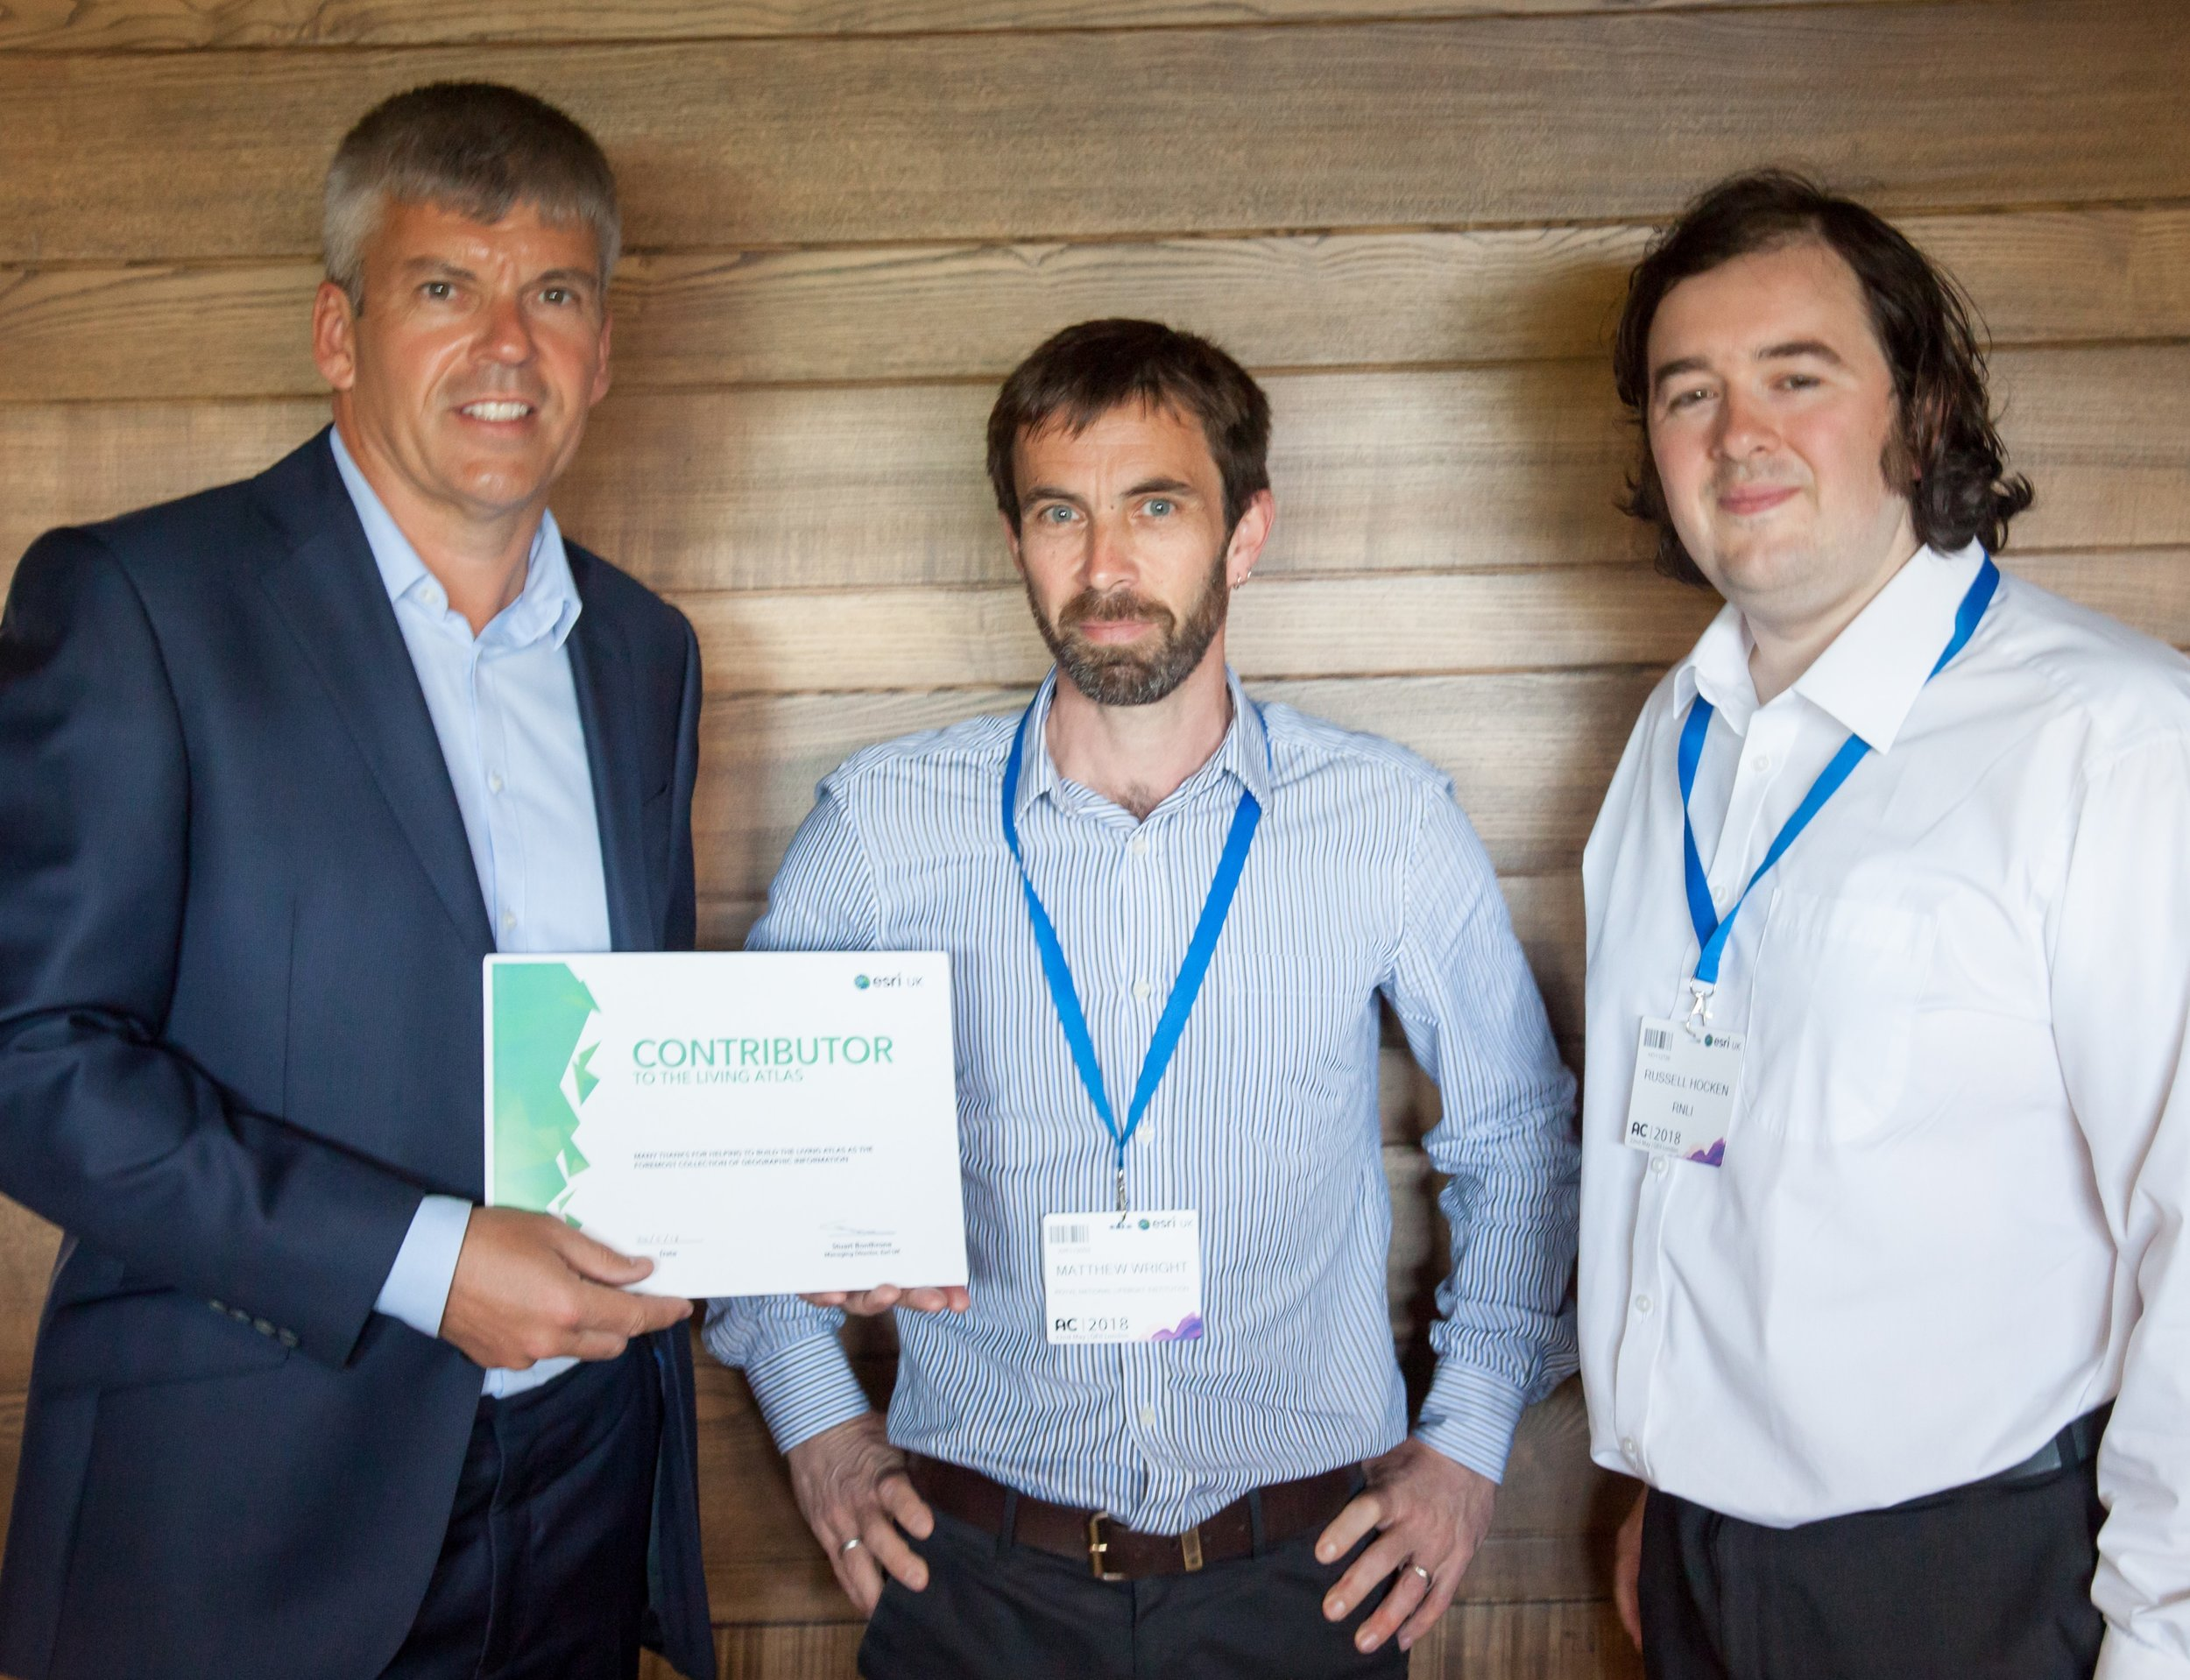 Left to right: Tim Welch, general manager at esri uk, thanking matthew wright, russell hocken and lee muttock (not pictured), from rnli, for their help with the conference